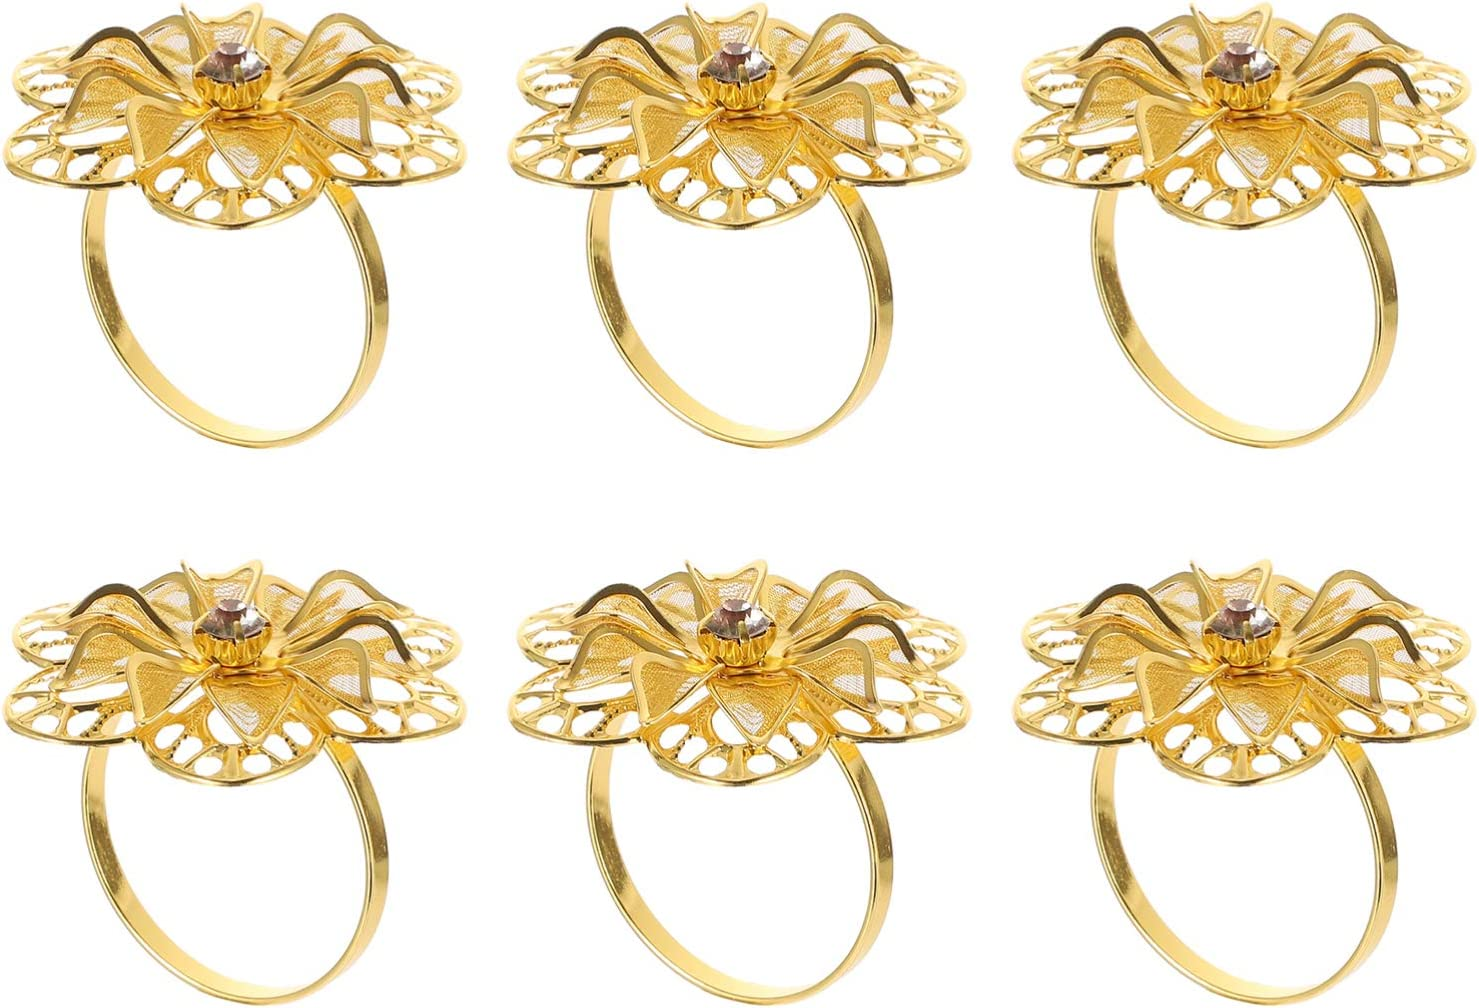 HEMOTON 6Pcs Floral Napkin Max 74% OFF Ranking TOP4 Rings Holders Dinner Wed Table